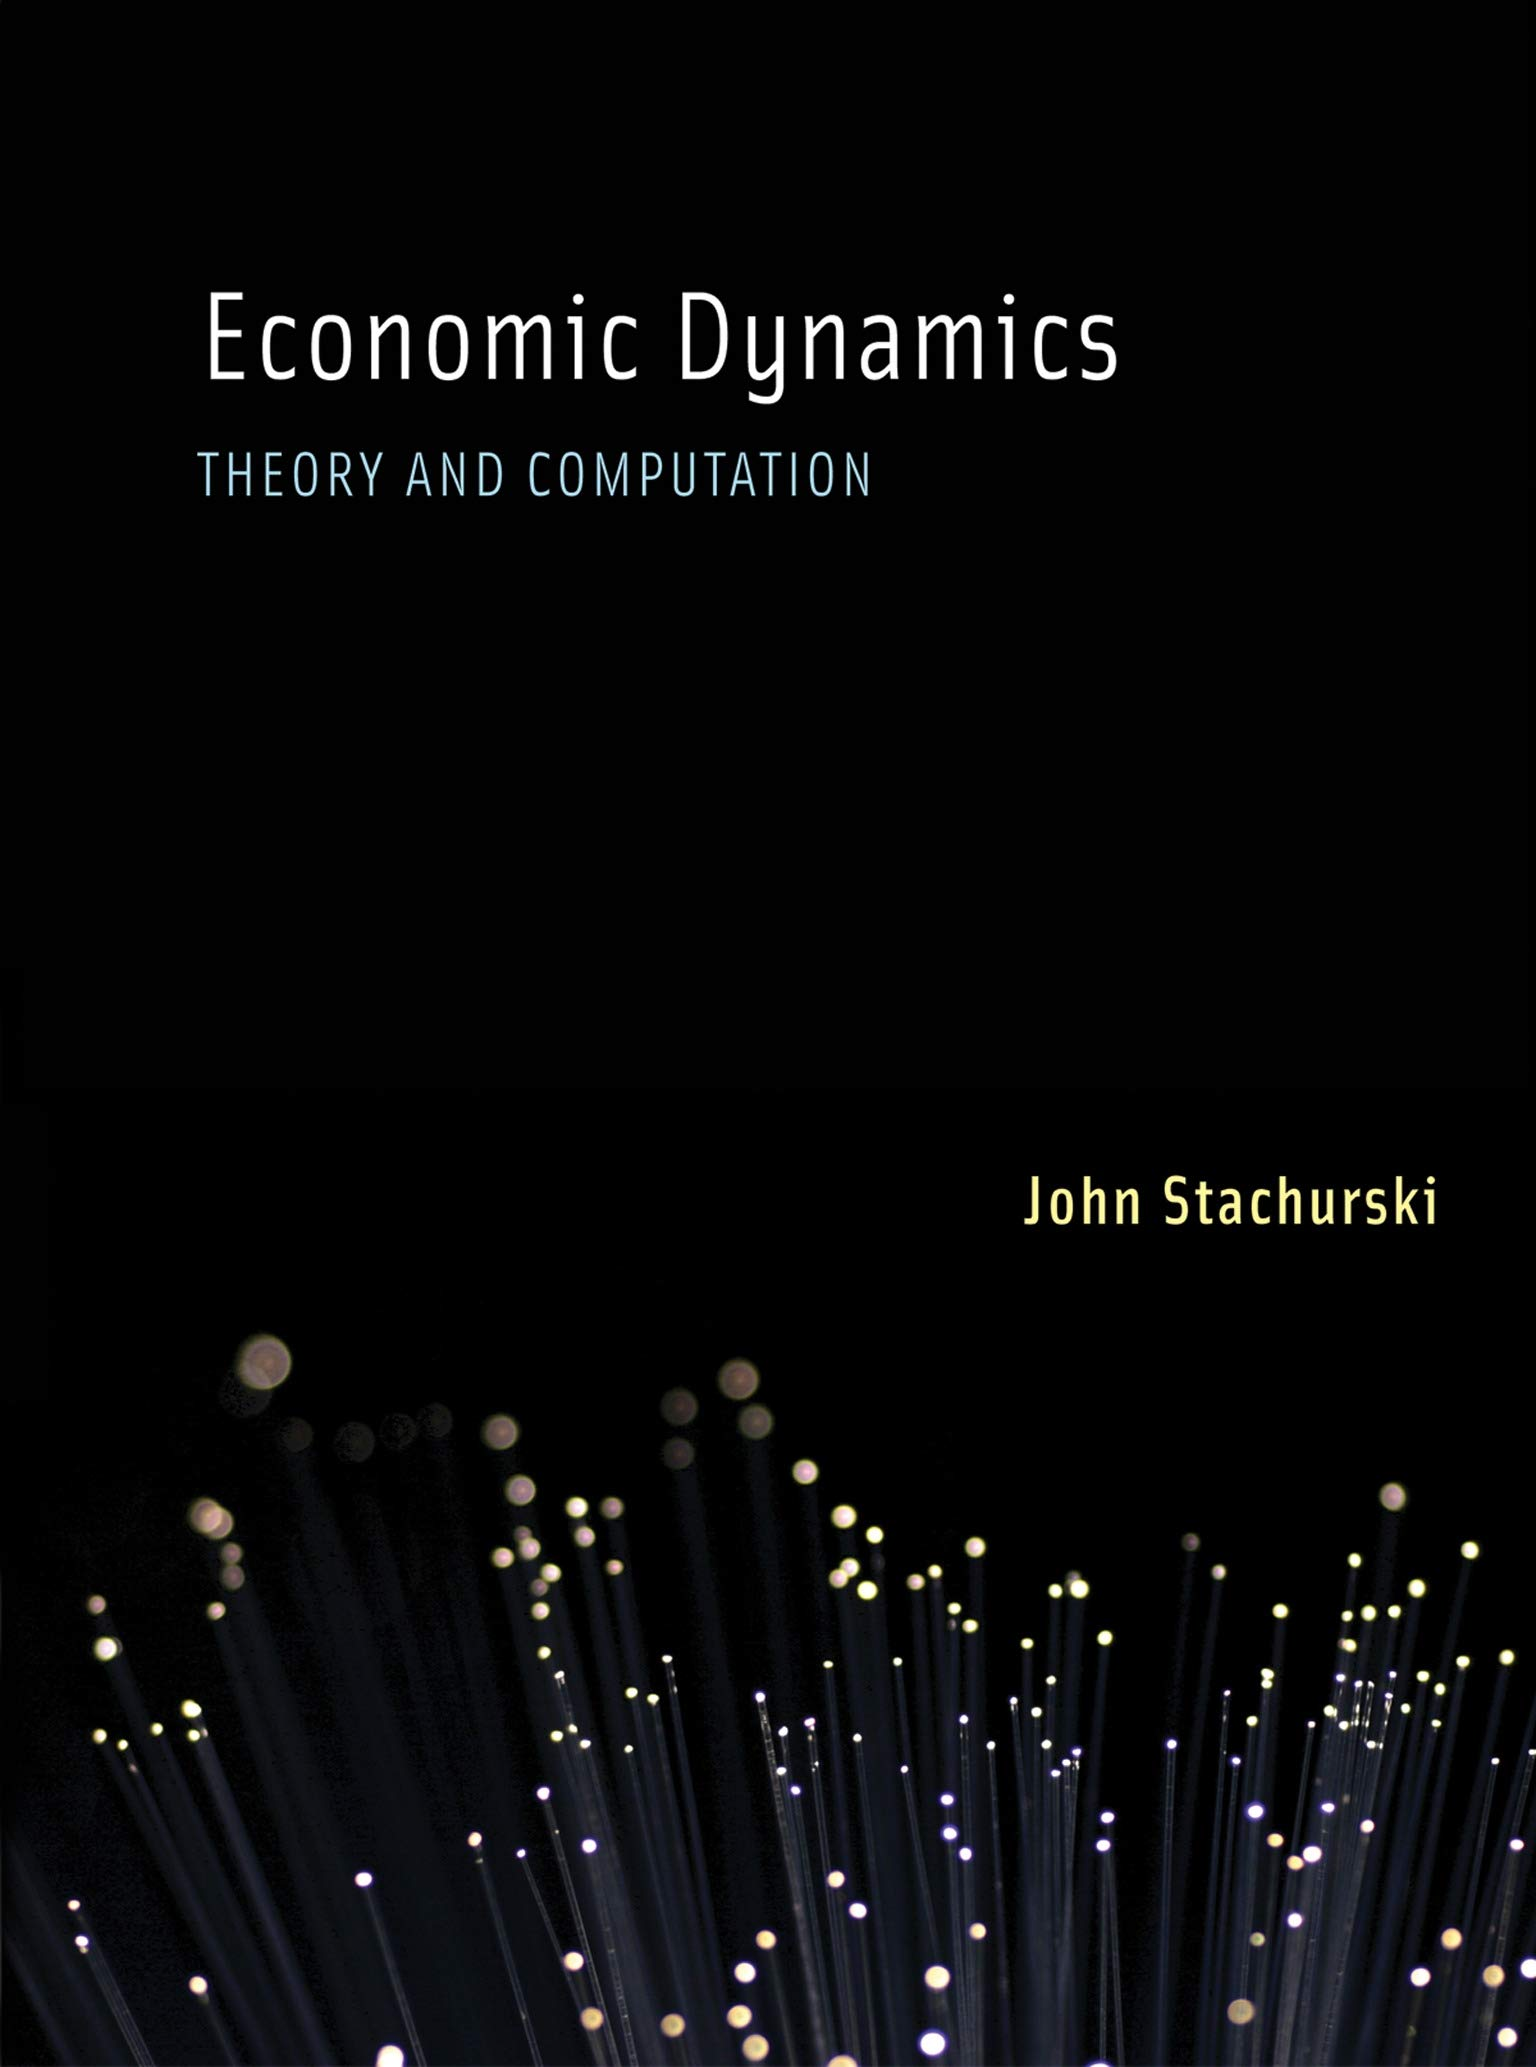 Download Ebook Economic Dynamics: Theory And Computation